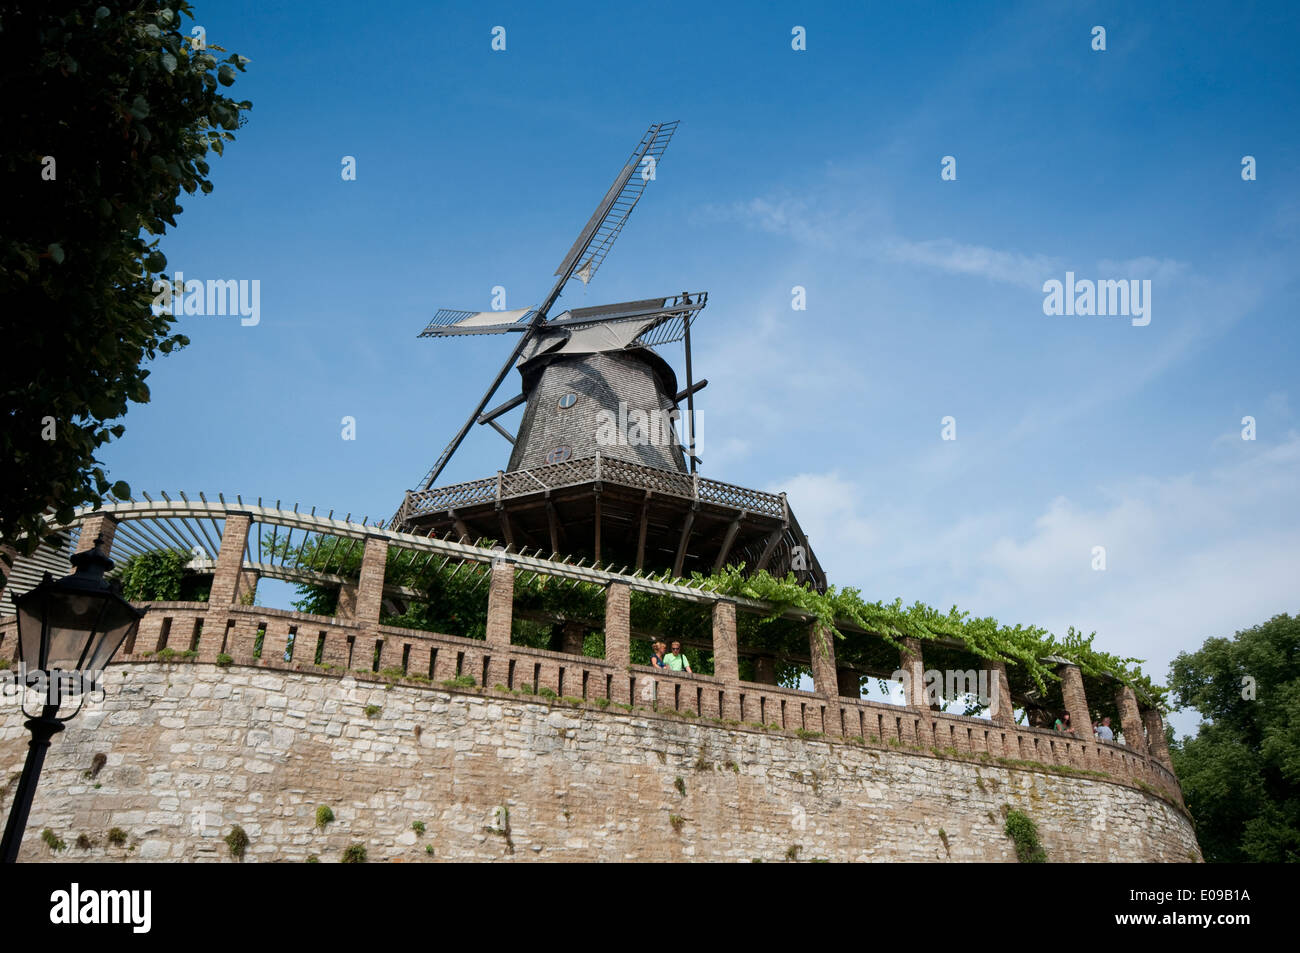 Germany, Brandenburg, Potsdam, Historic Wooden Windmill - Stock Image